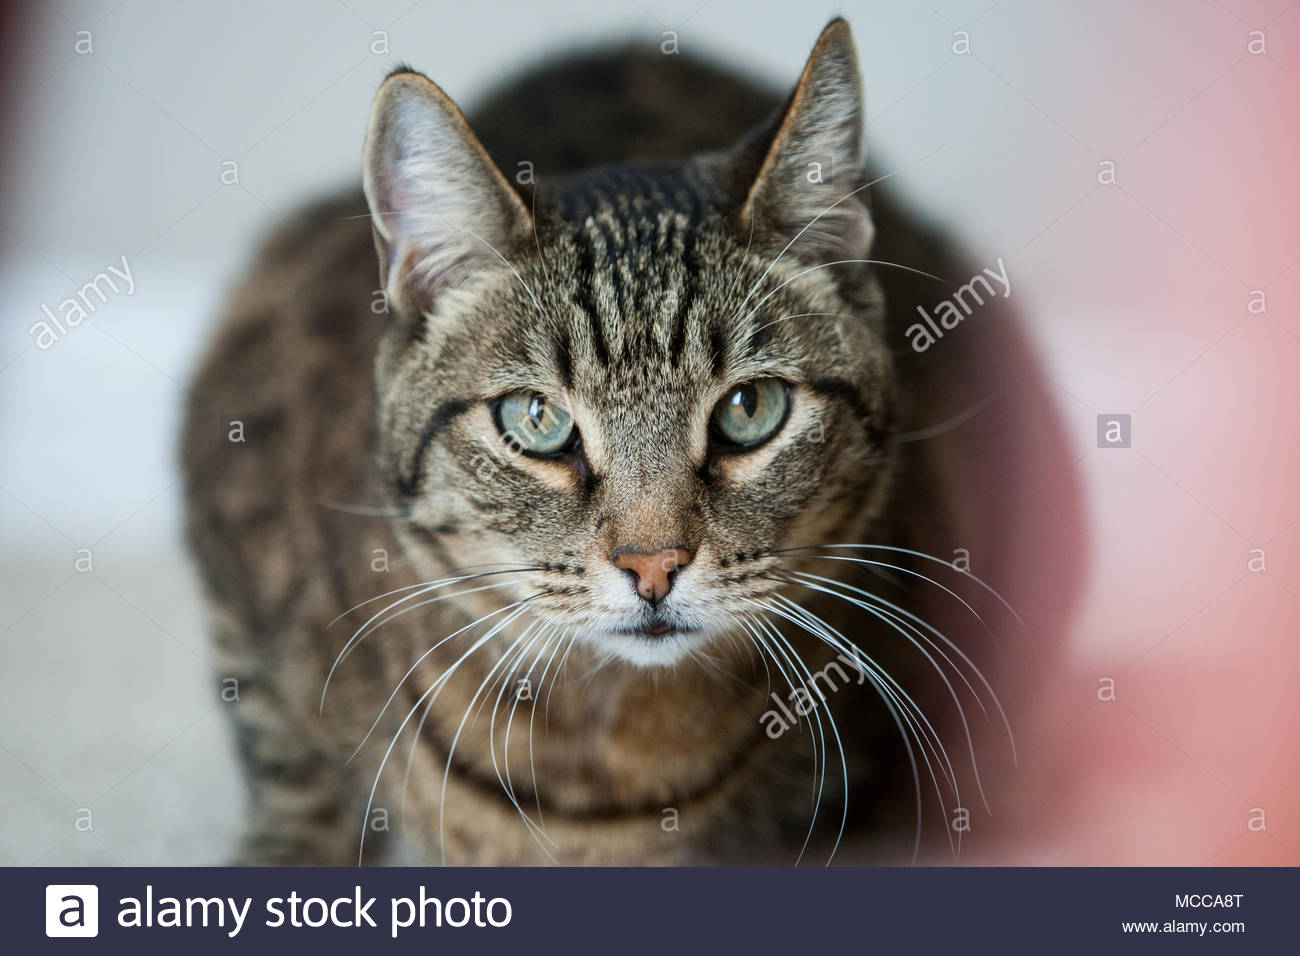 Close-up of green eyed crouching brown striped tabby cat - Stock Image